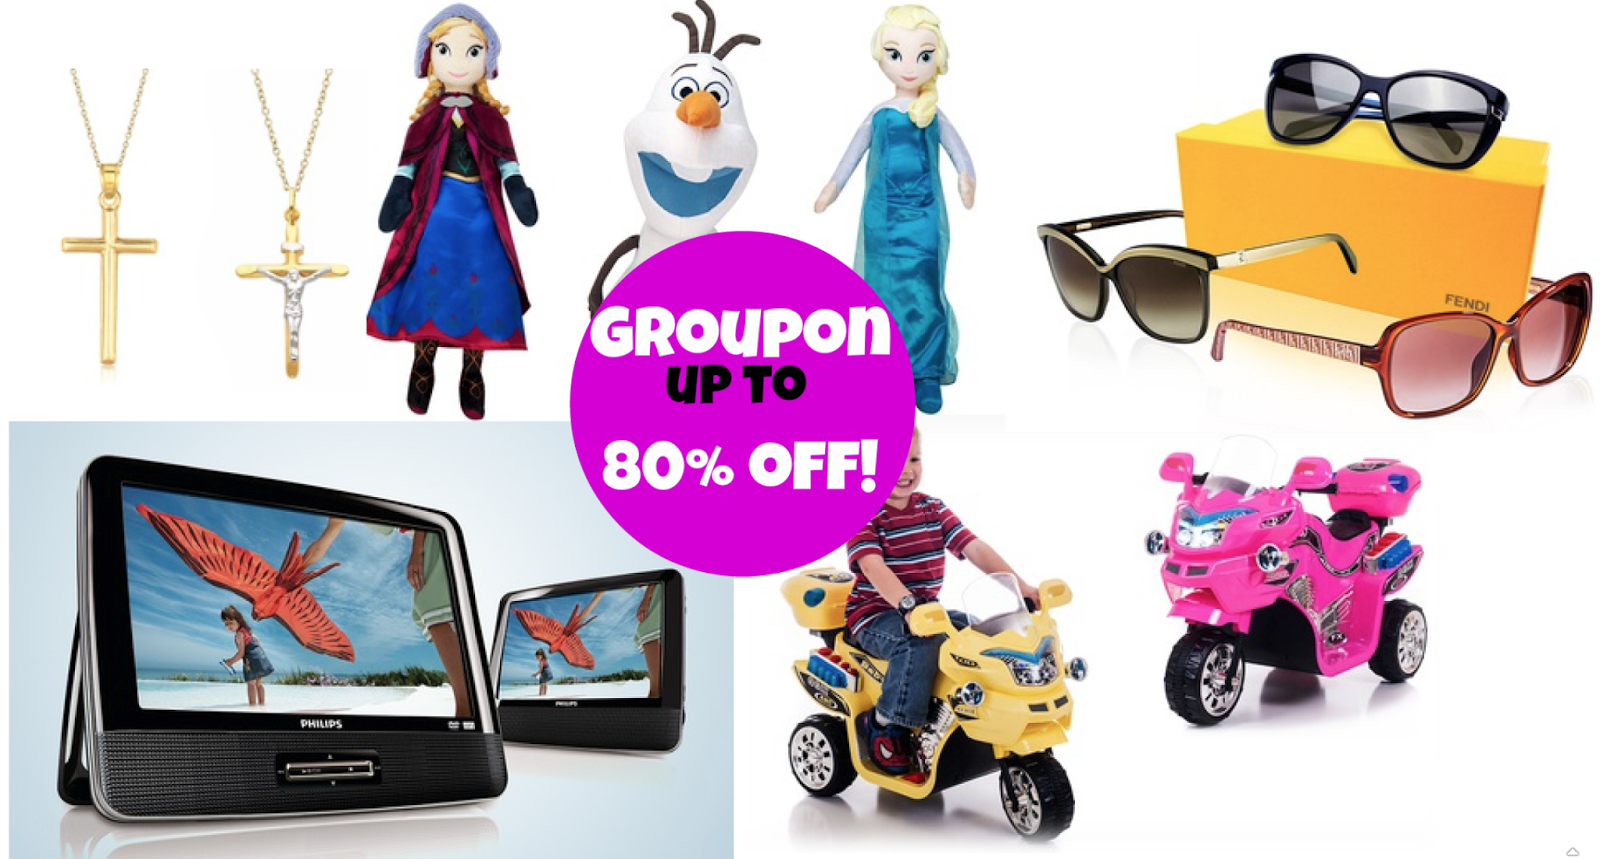 http://www.thebinderladies.com/2014/12/groupon-cyber-monday-deals-up-to-80-off.html#.VHyLhYfduyM